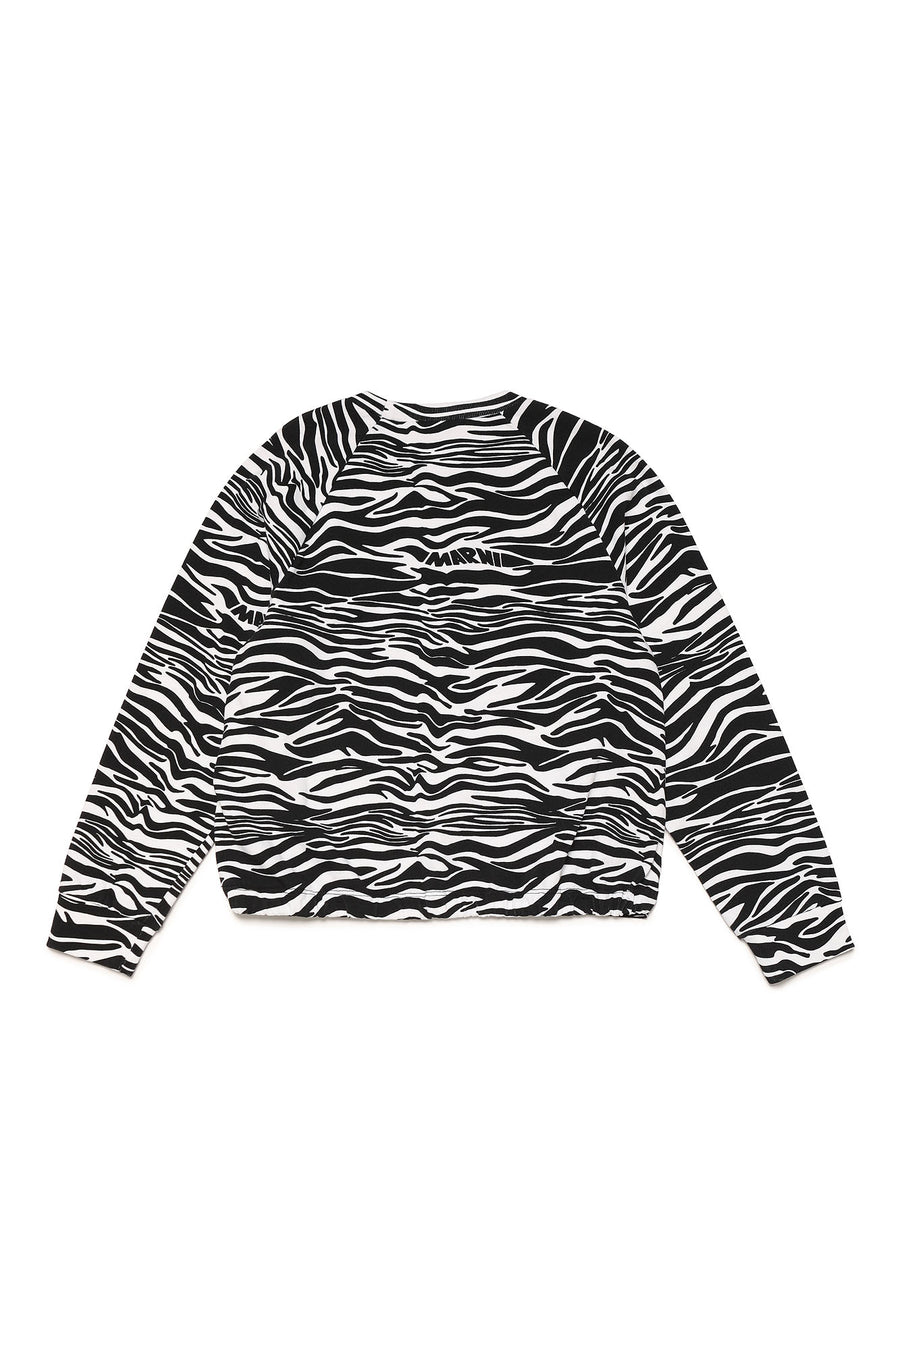 Zebra Sweatshirt by Marni